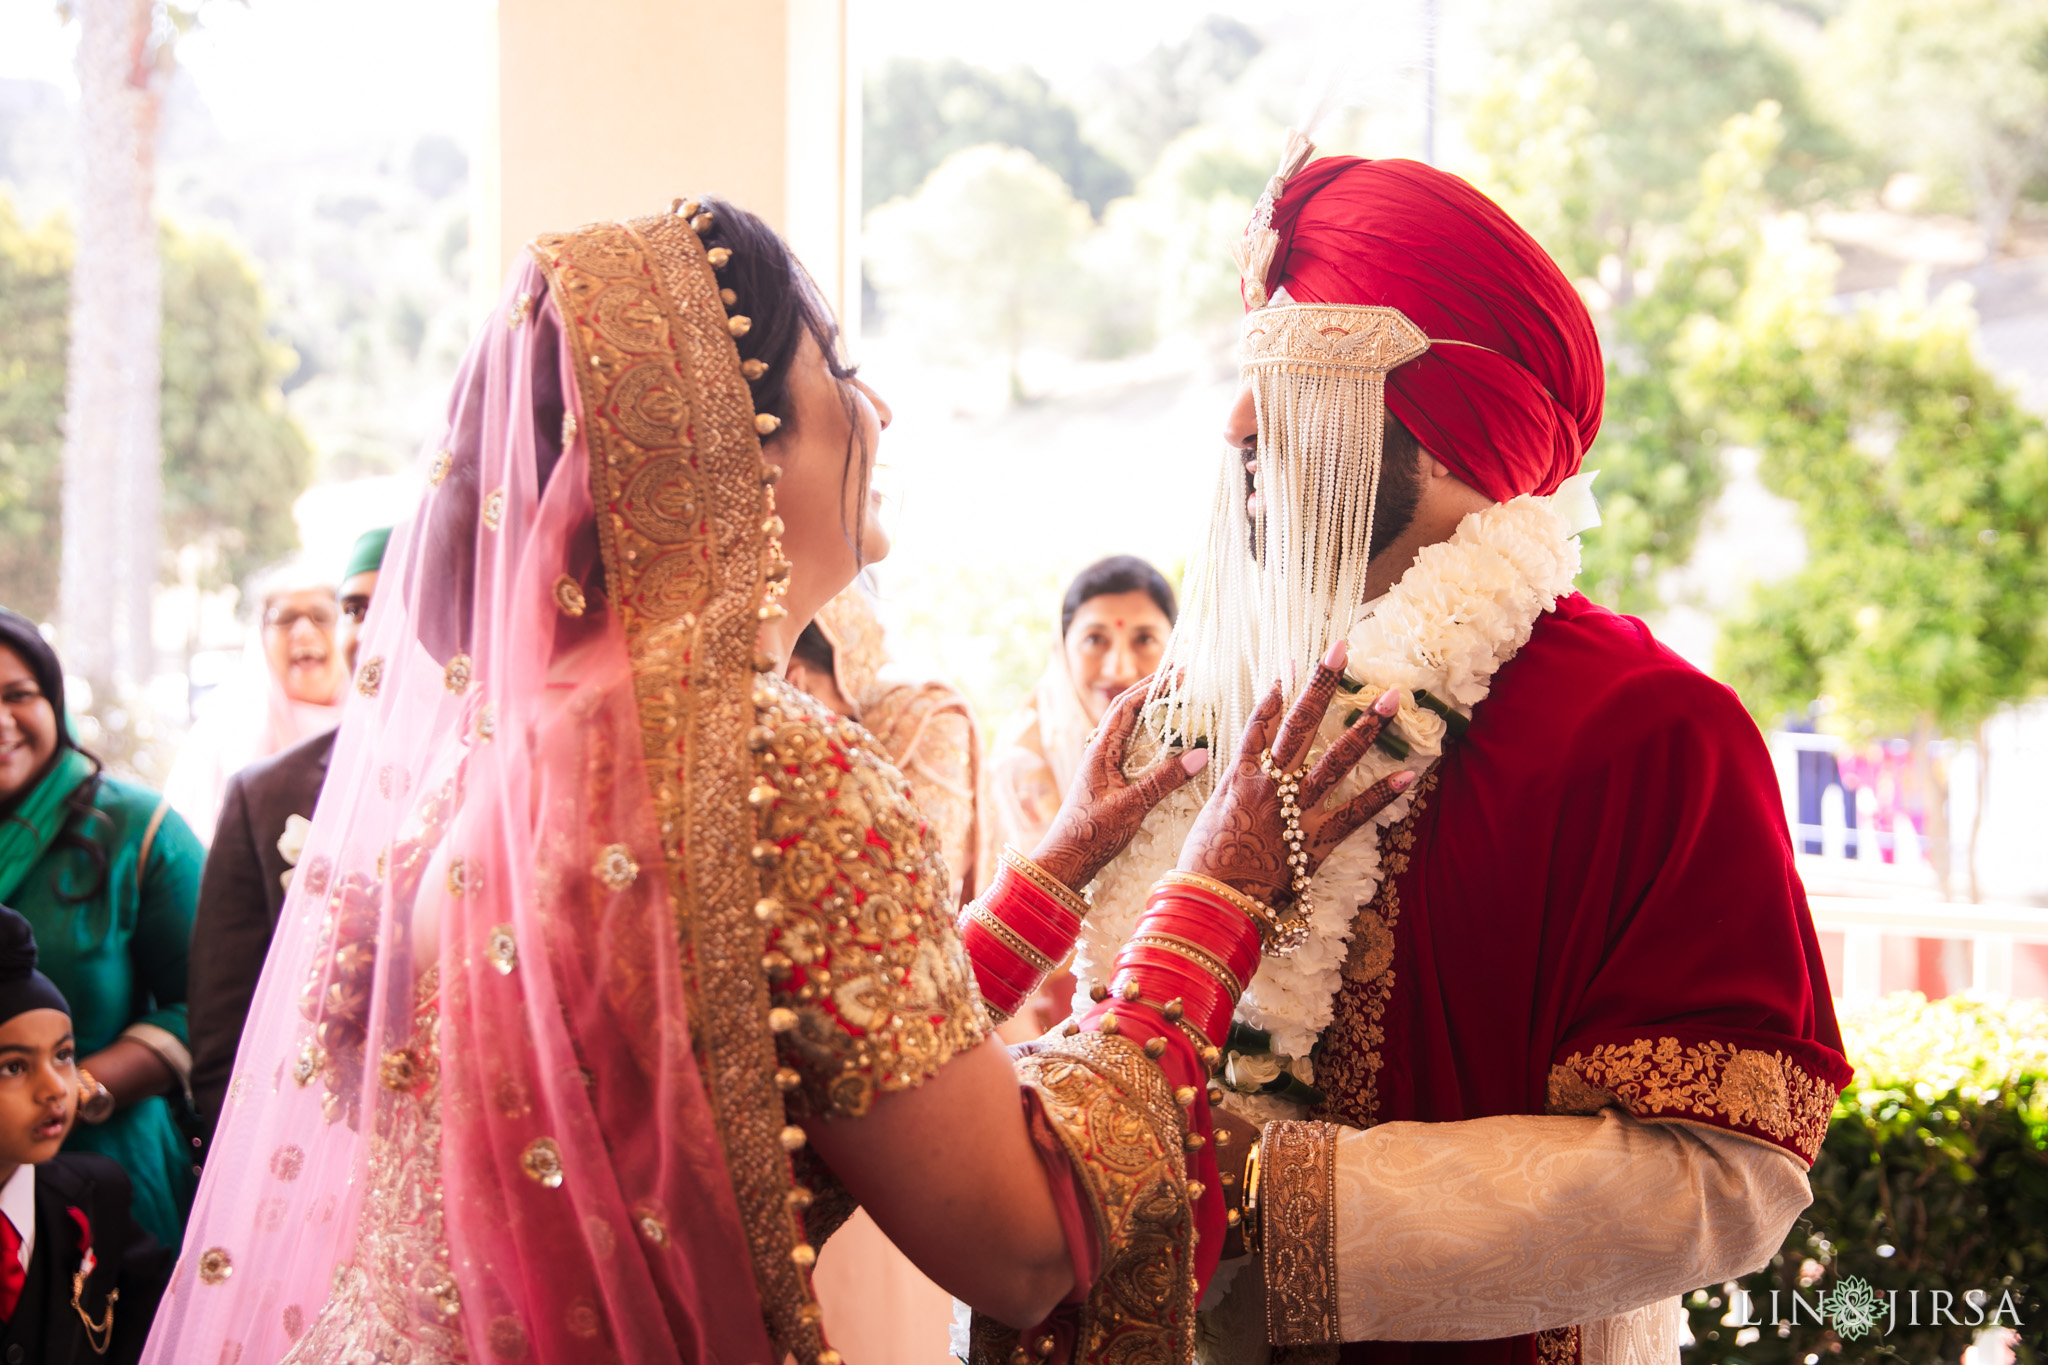 024 san francisco sikh center punjabi wedding photography